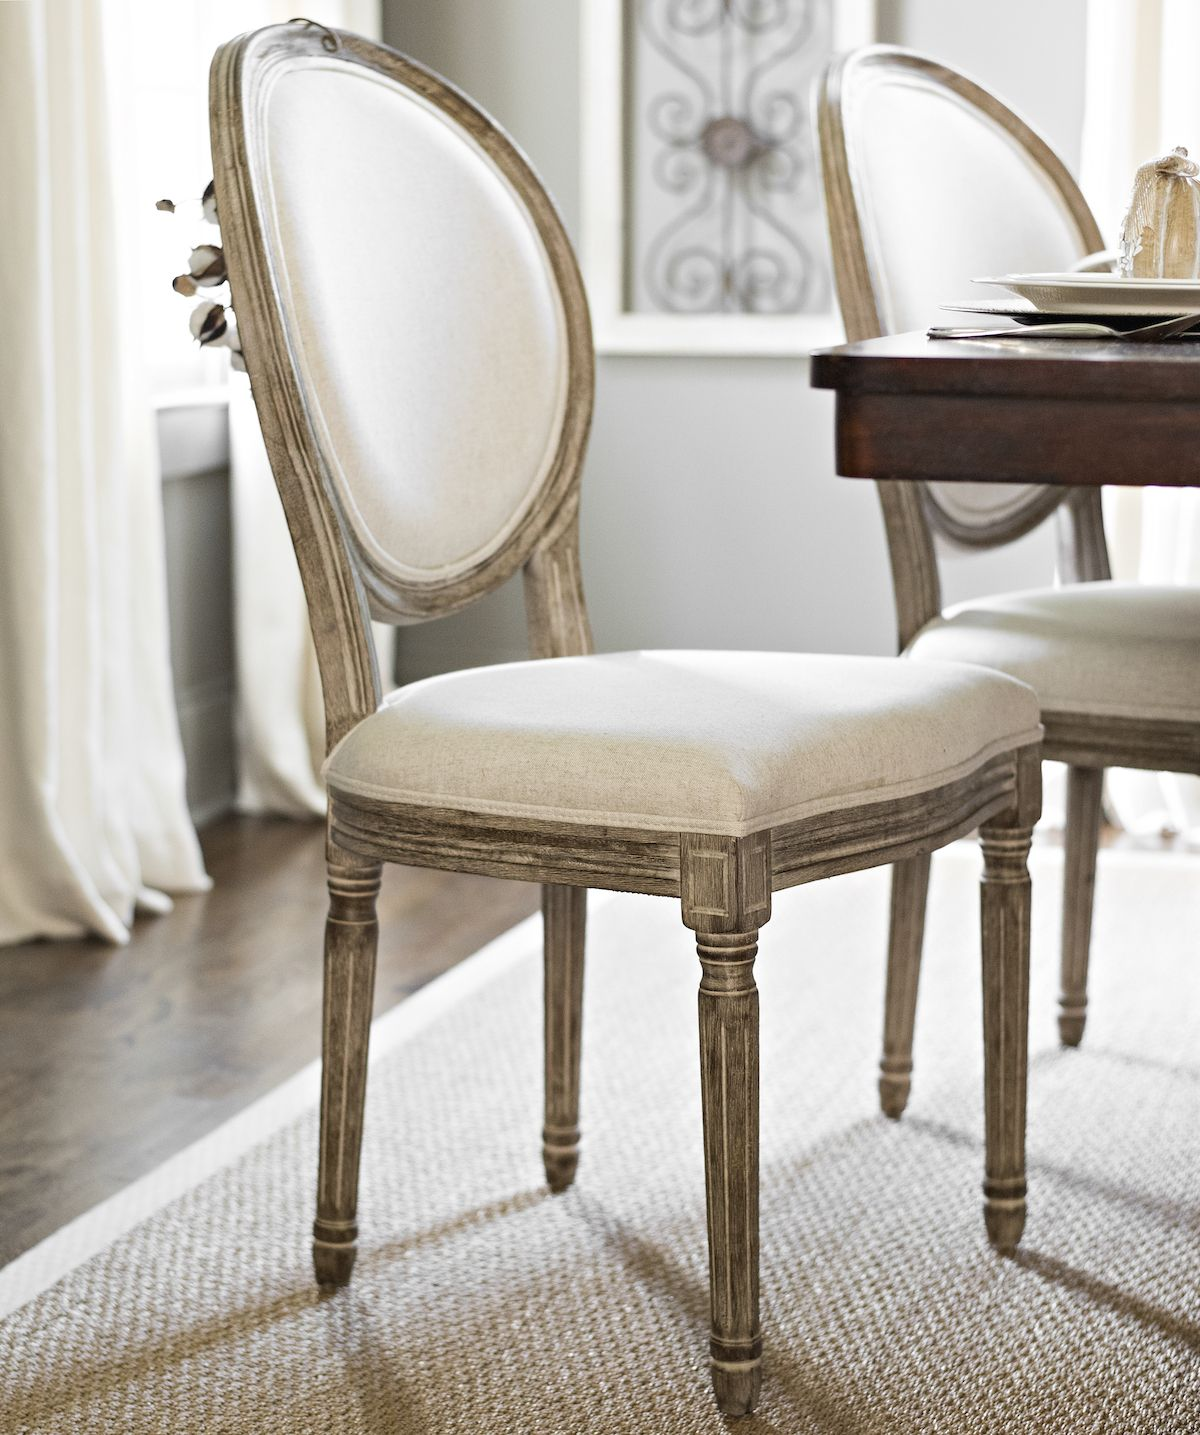 Product Details Ivory Louis Dining Chair